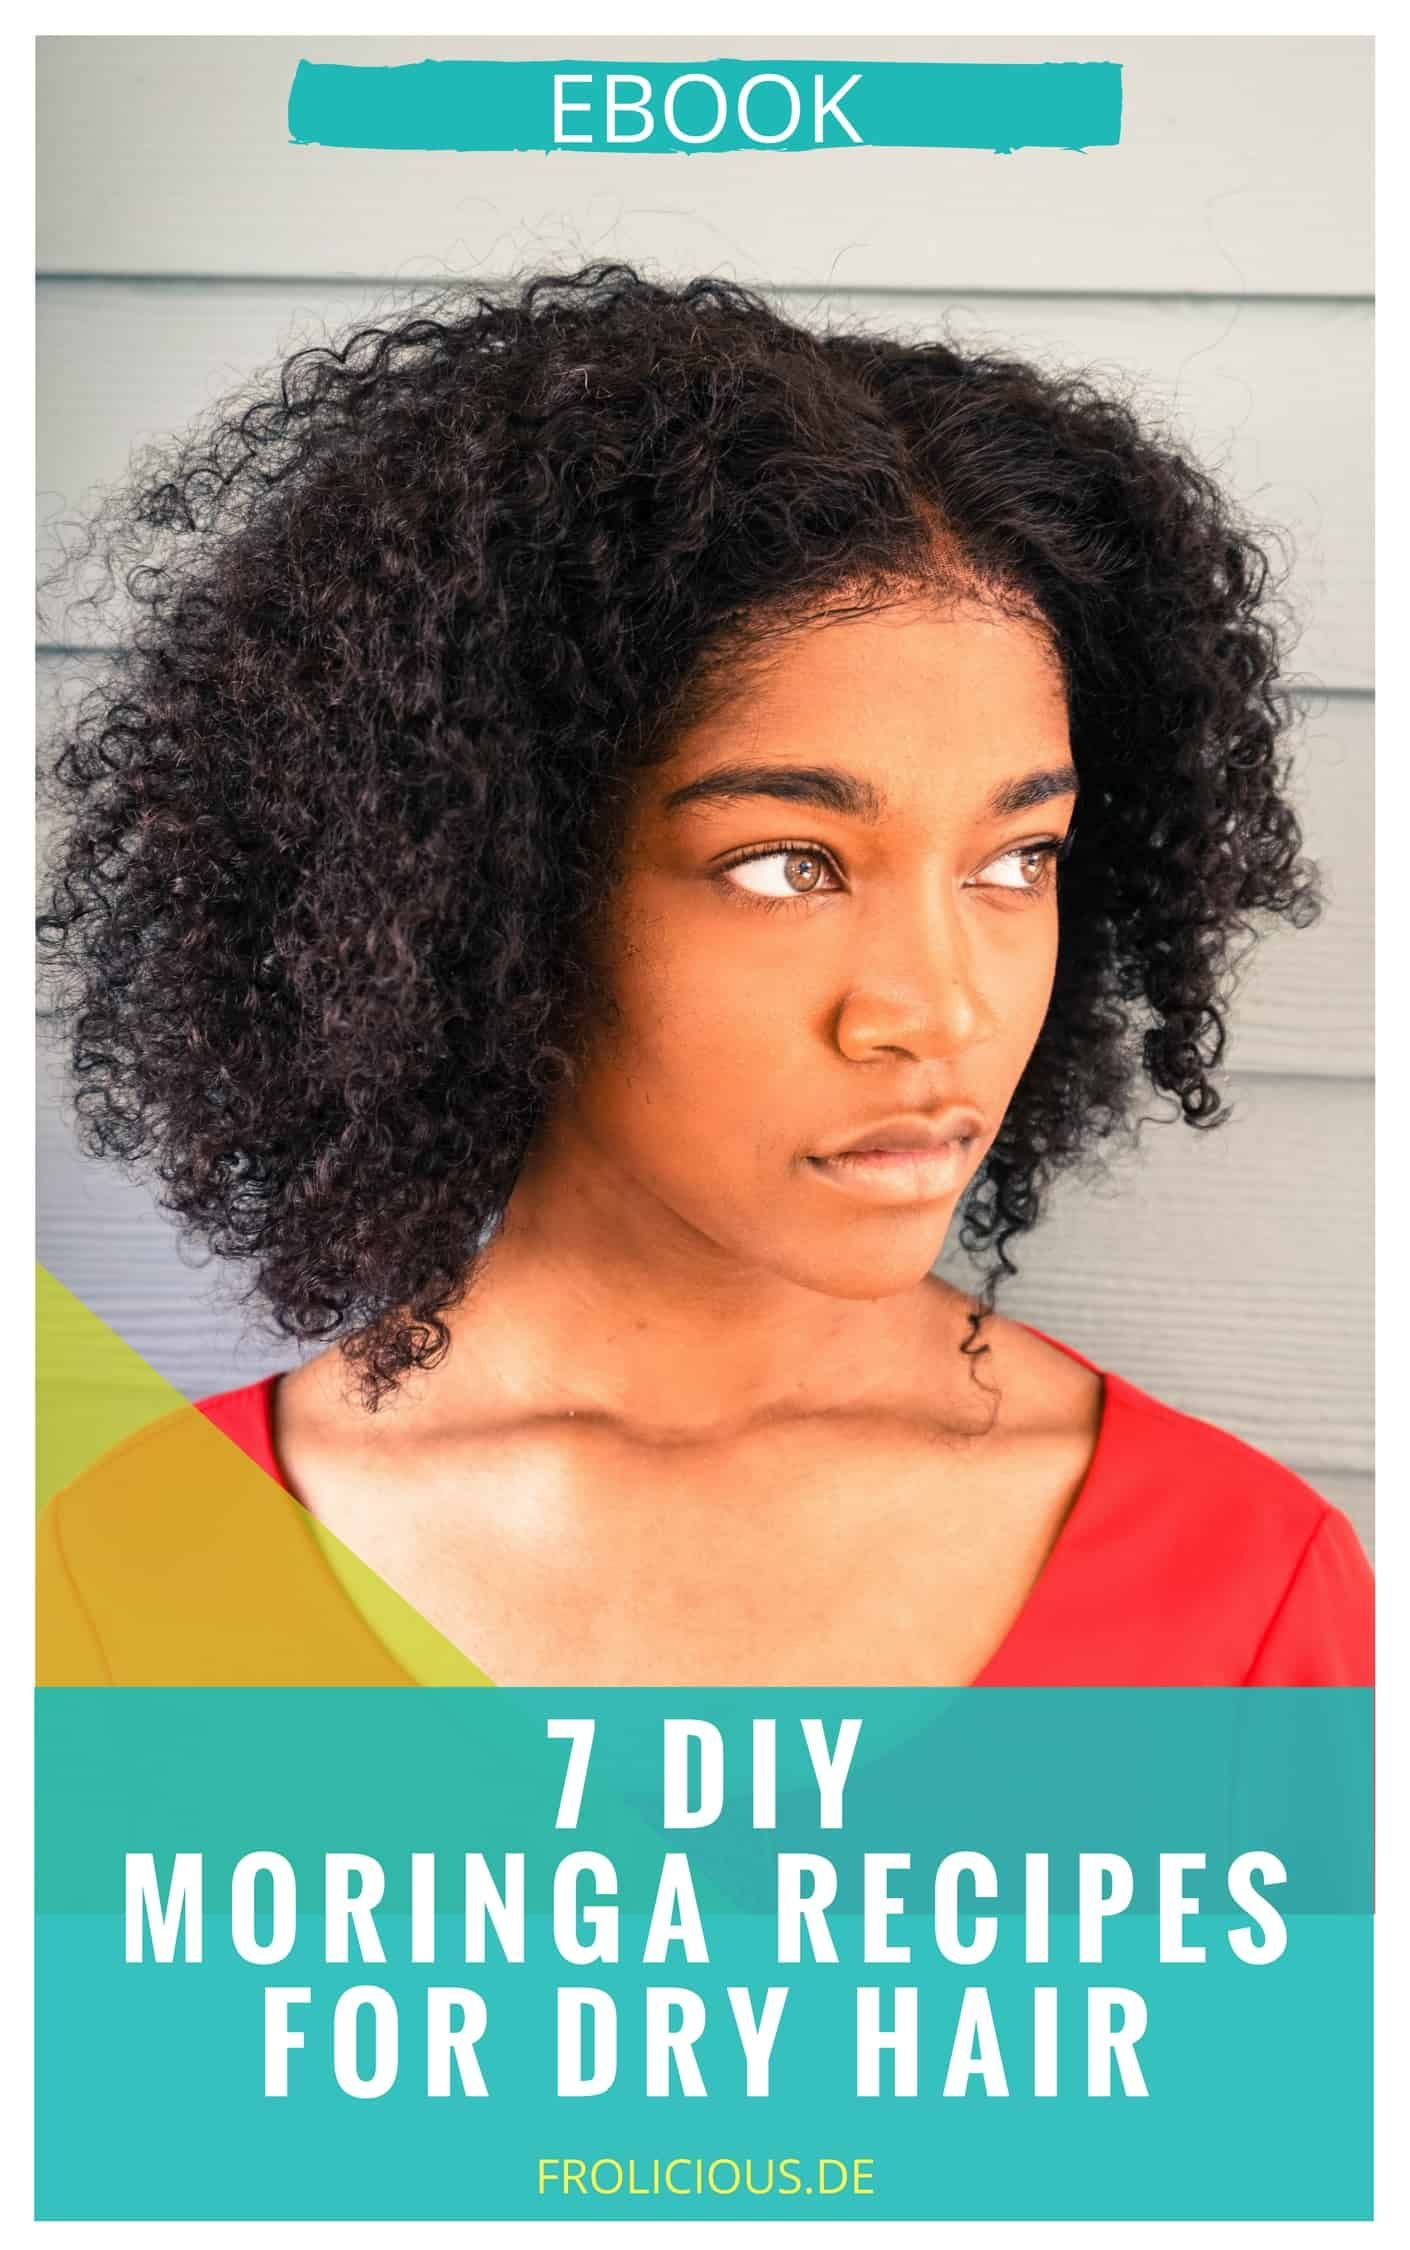 8 Natural Hairstyles For When It's Just Too Hot To Use A Blow-Dryer